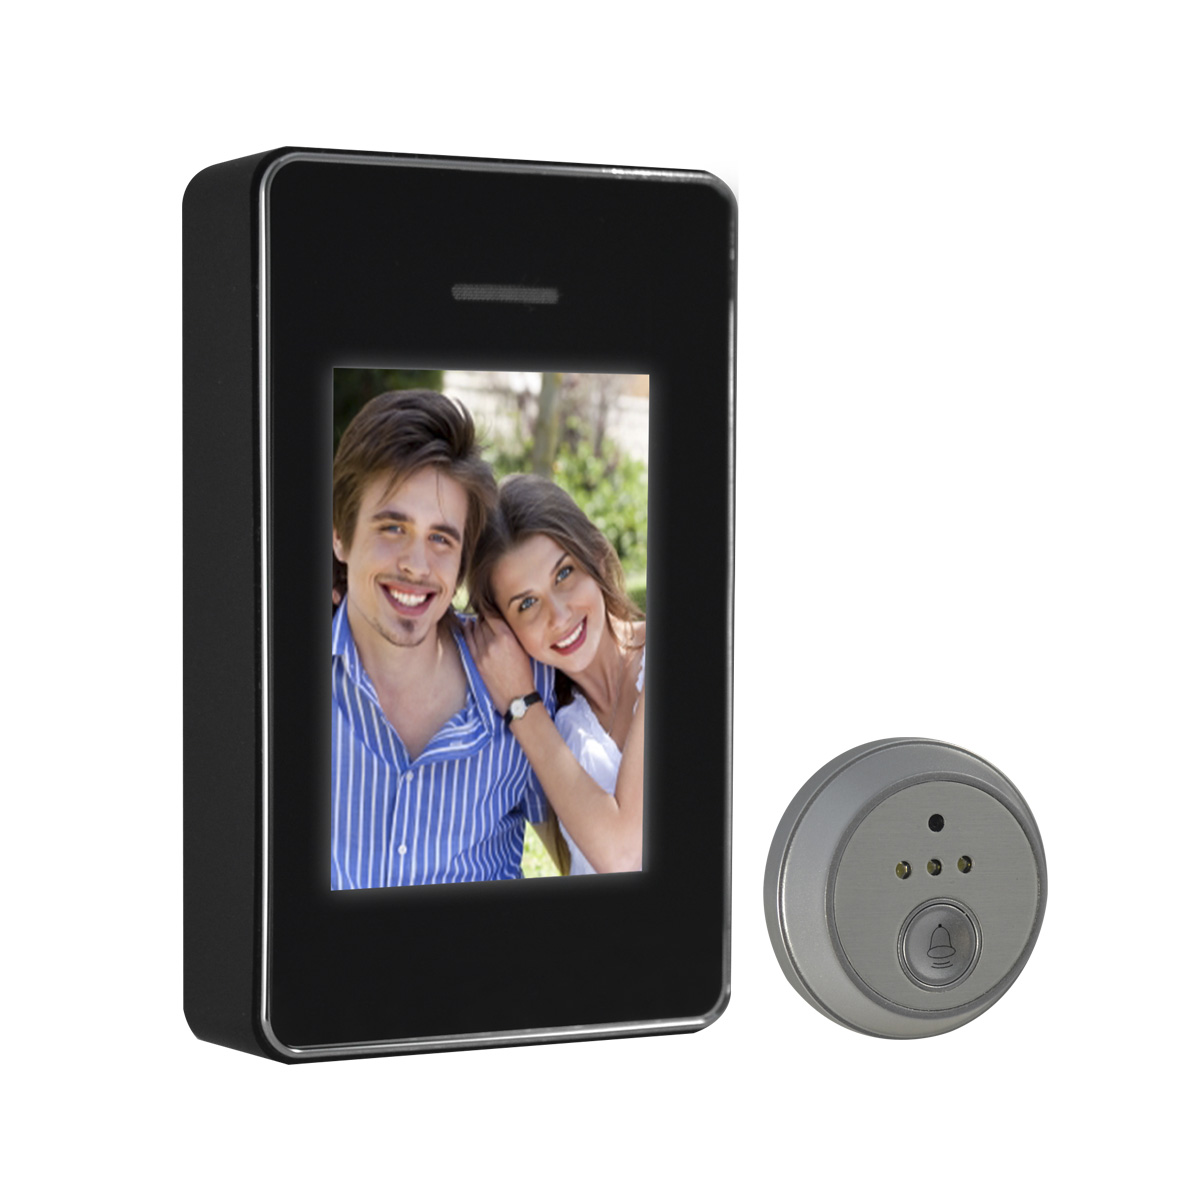 Video Intercom System with LCD screen 2.8in and camera sensor 1/6